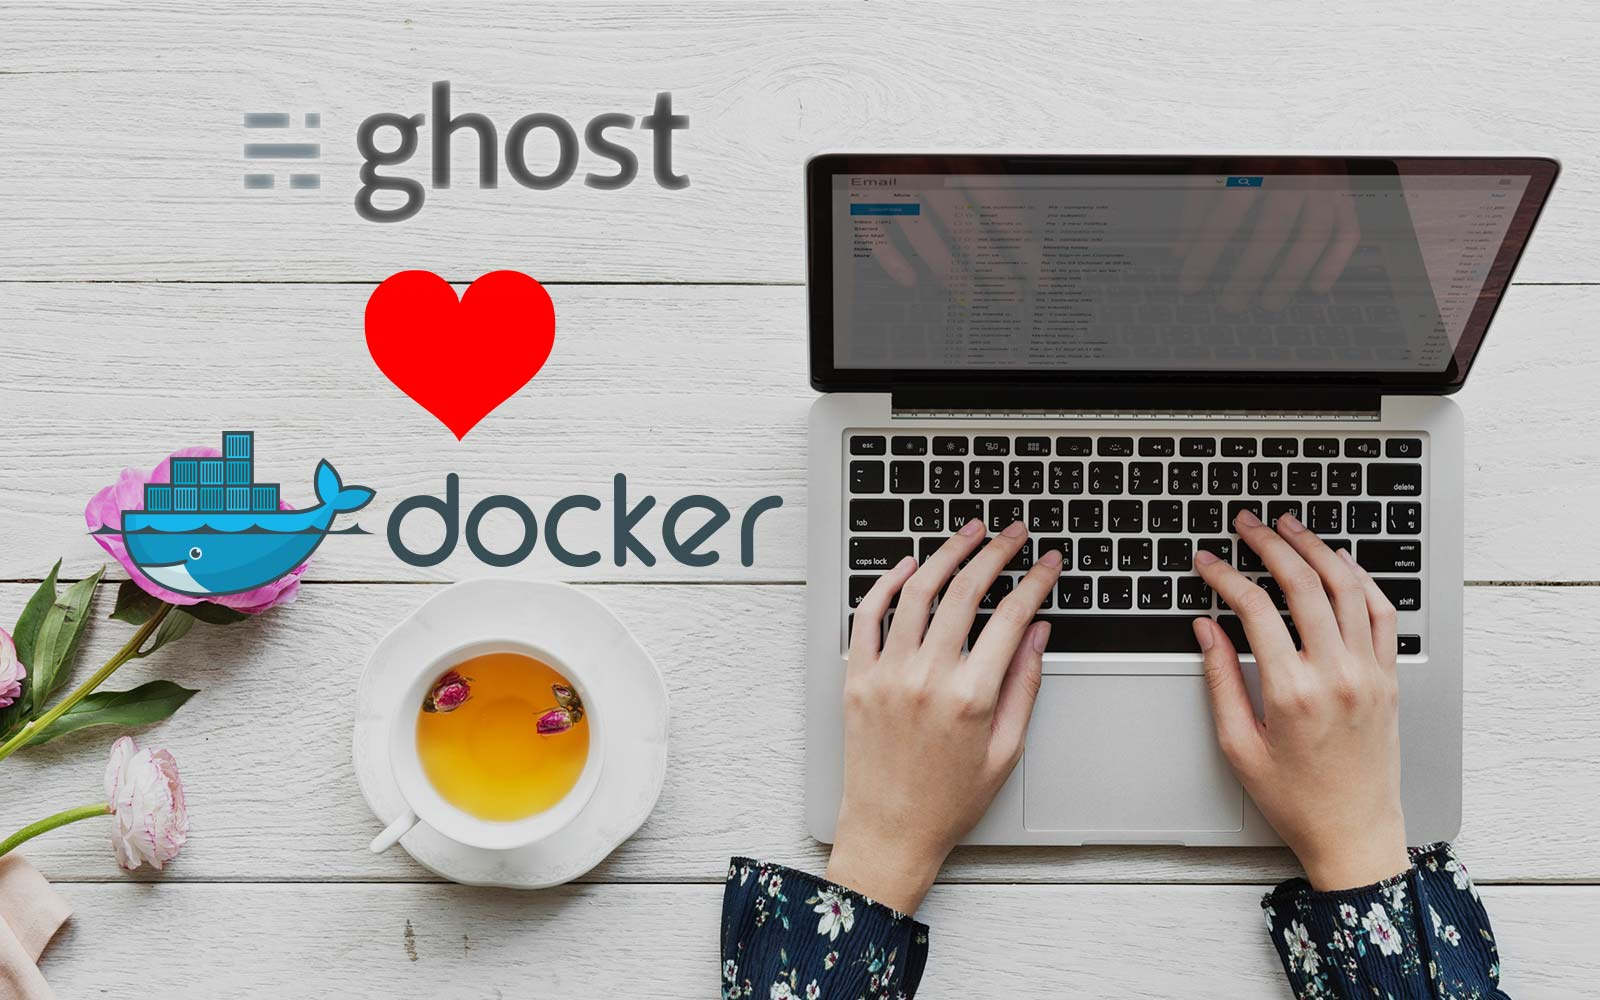 Run a Self Updating Ghost Blog with Docker